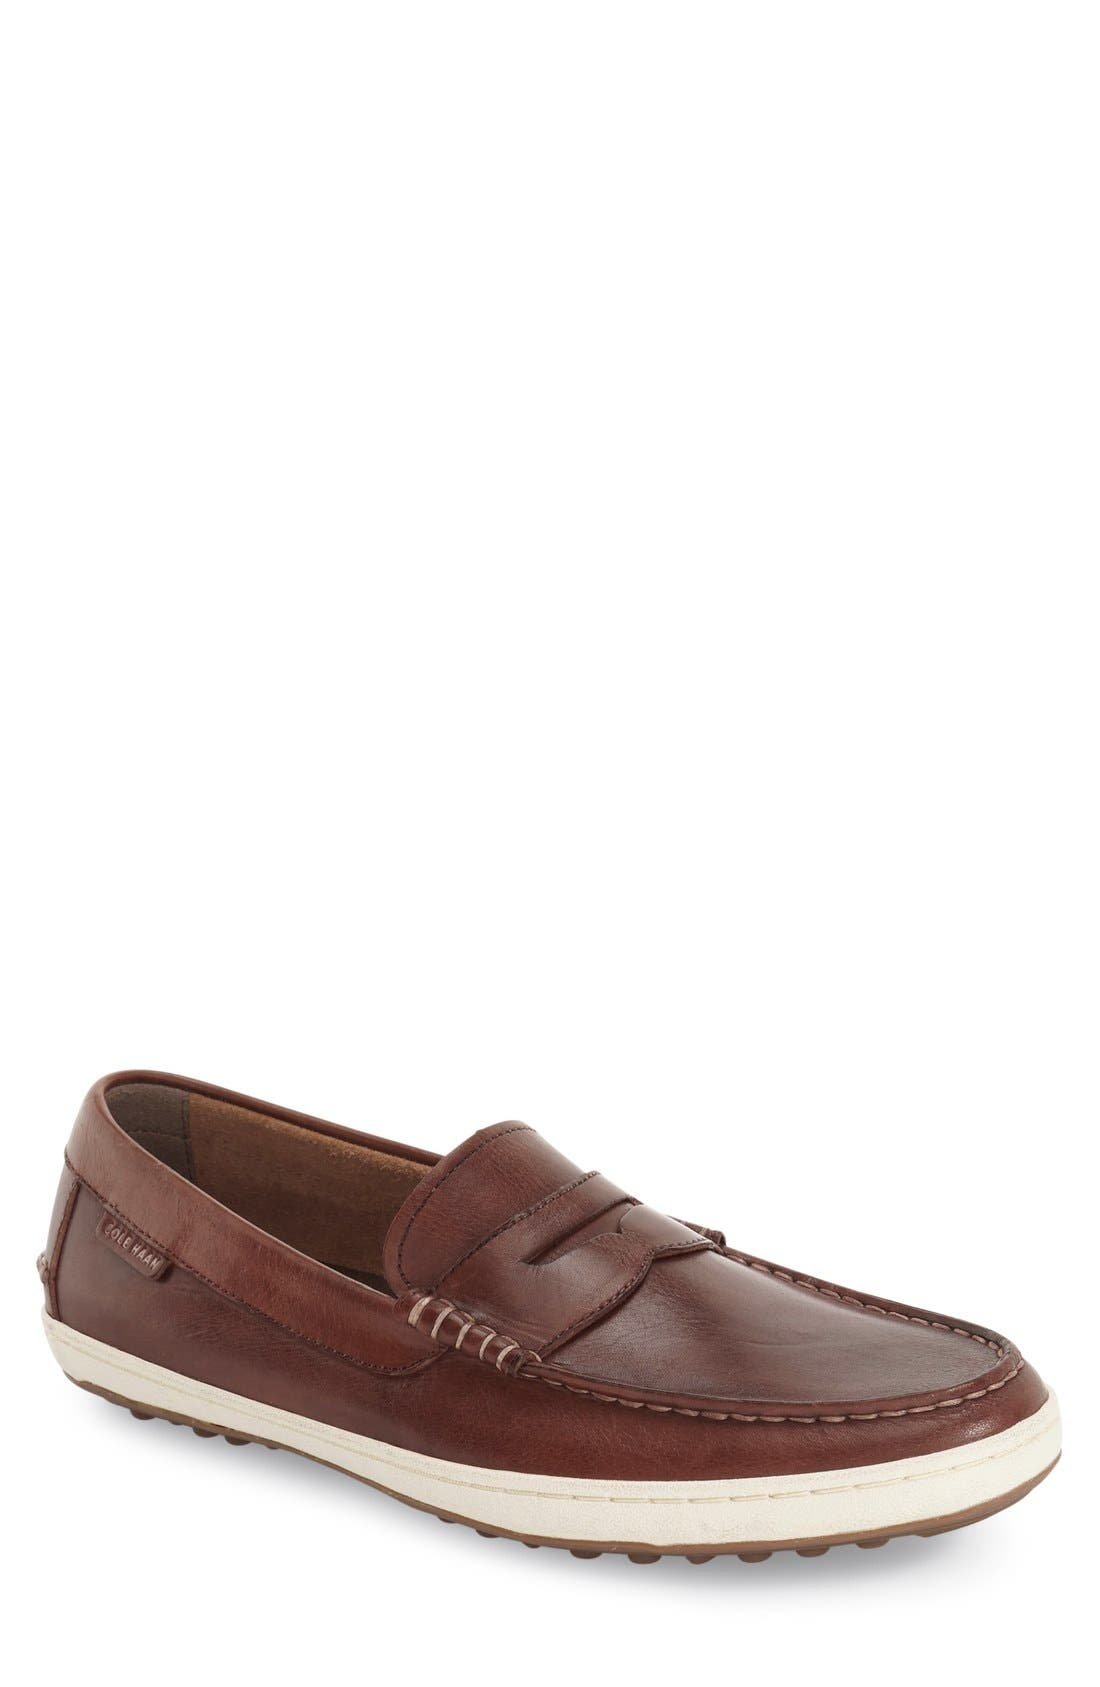 'Pinch Roadtrip' Penny Loafer,                         Main,                         color, 200